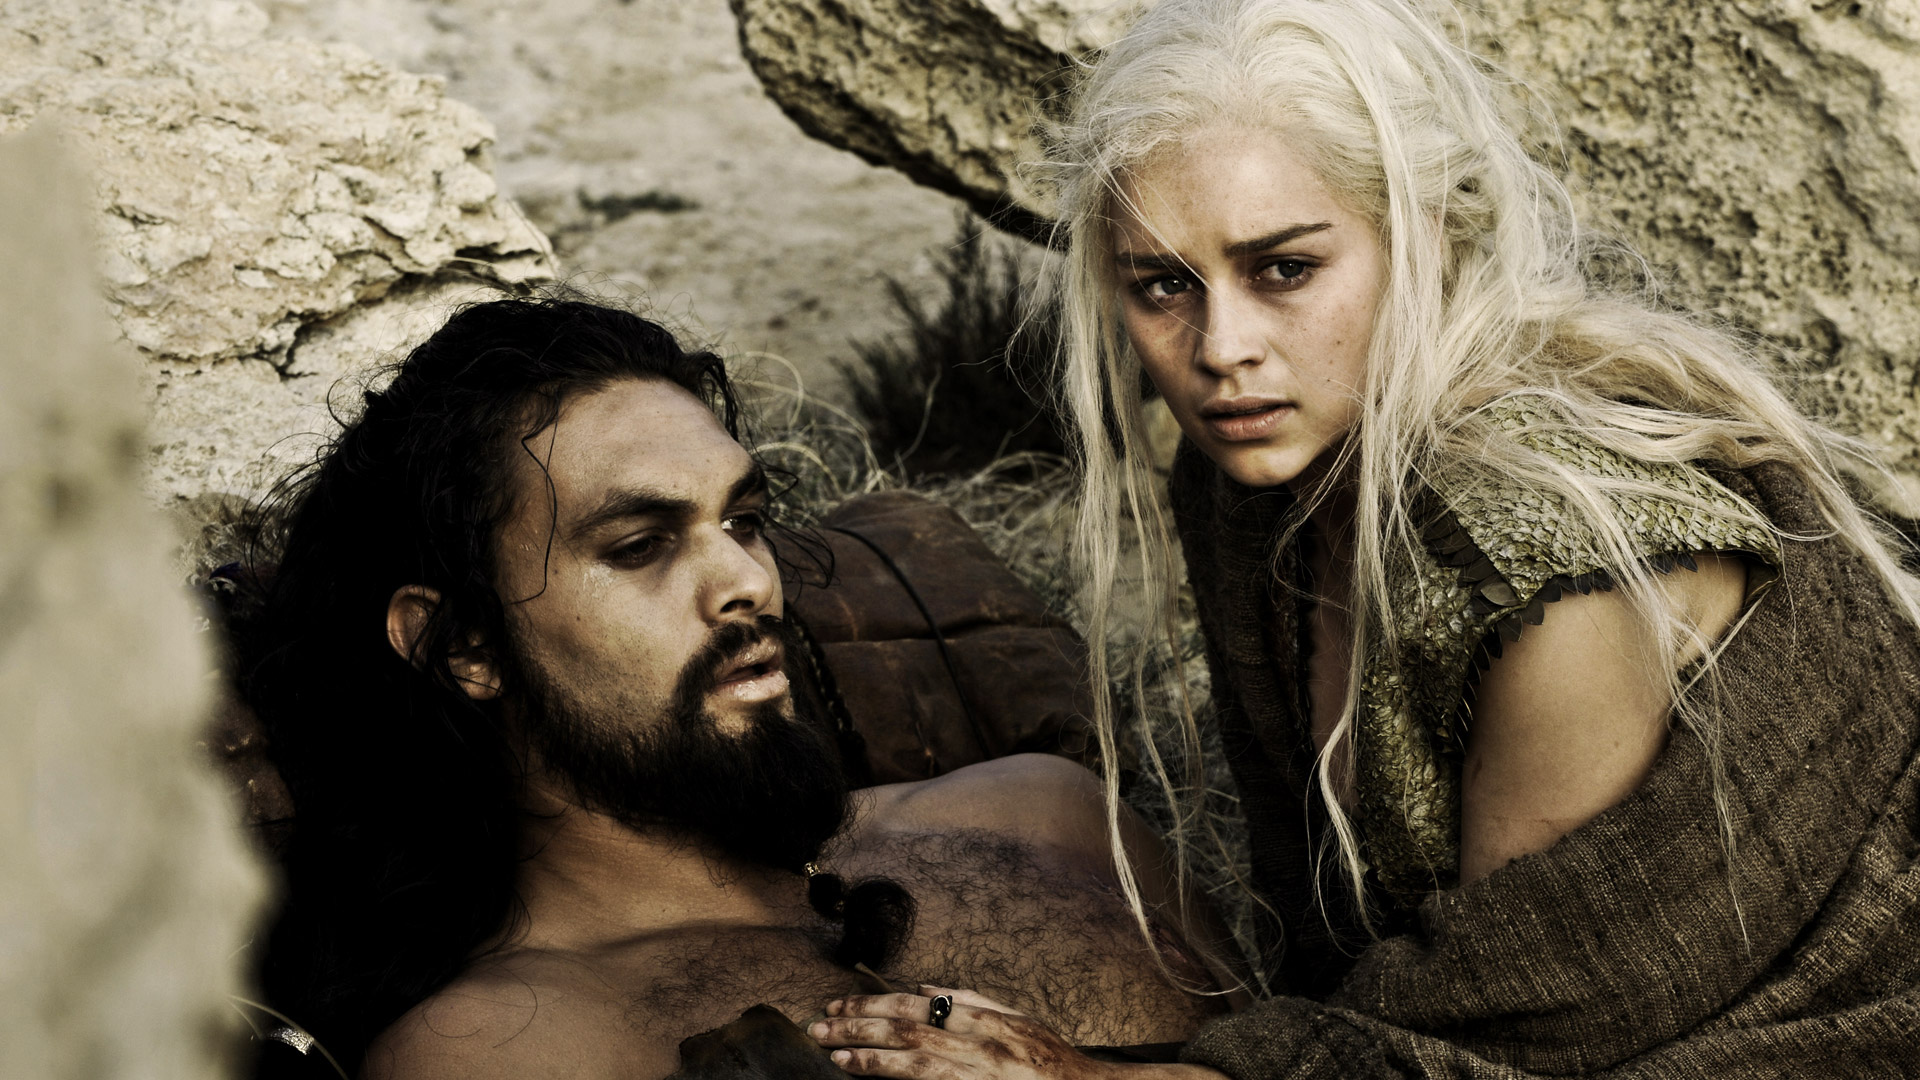 Khal and Khaleesi from the TV series Game of Thrones